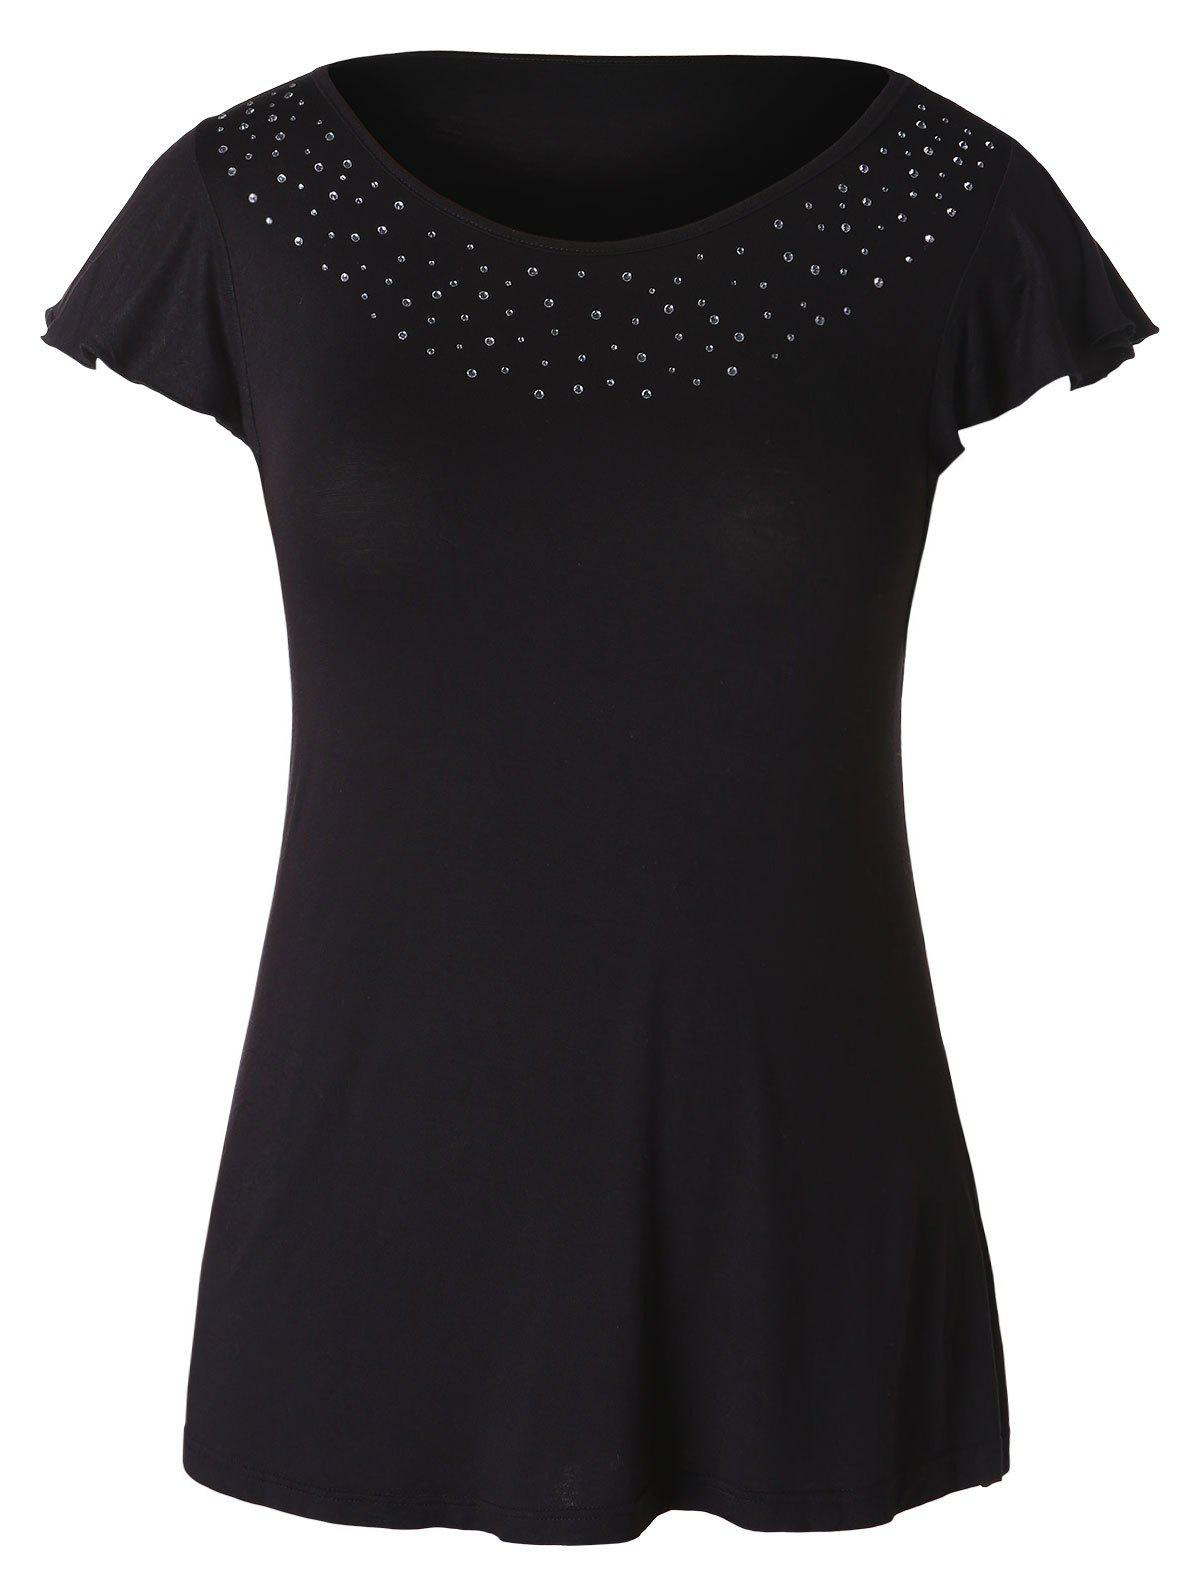 Hot Plus Size Rhinestone Embellished T-shirt